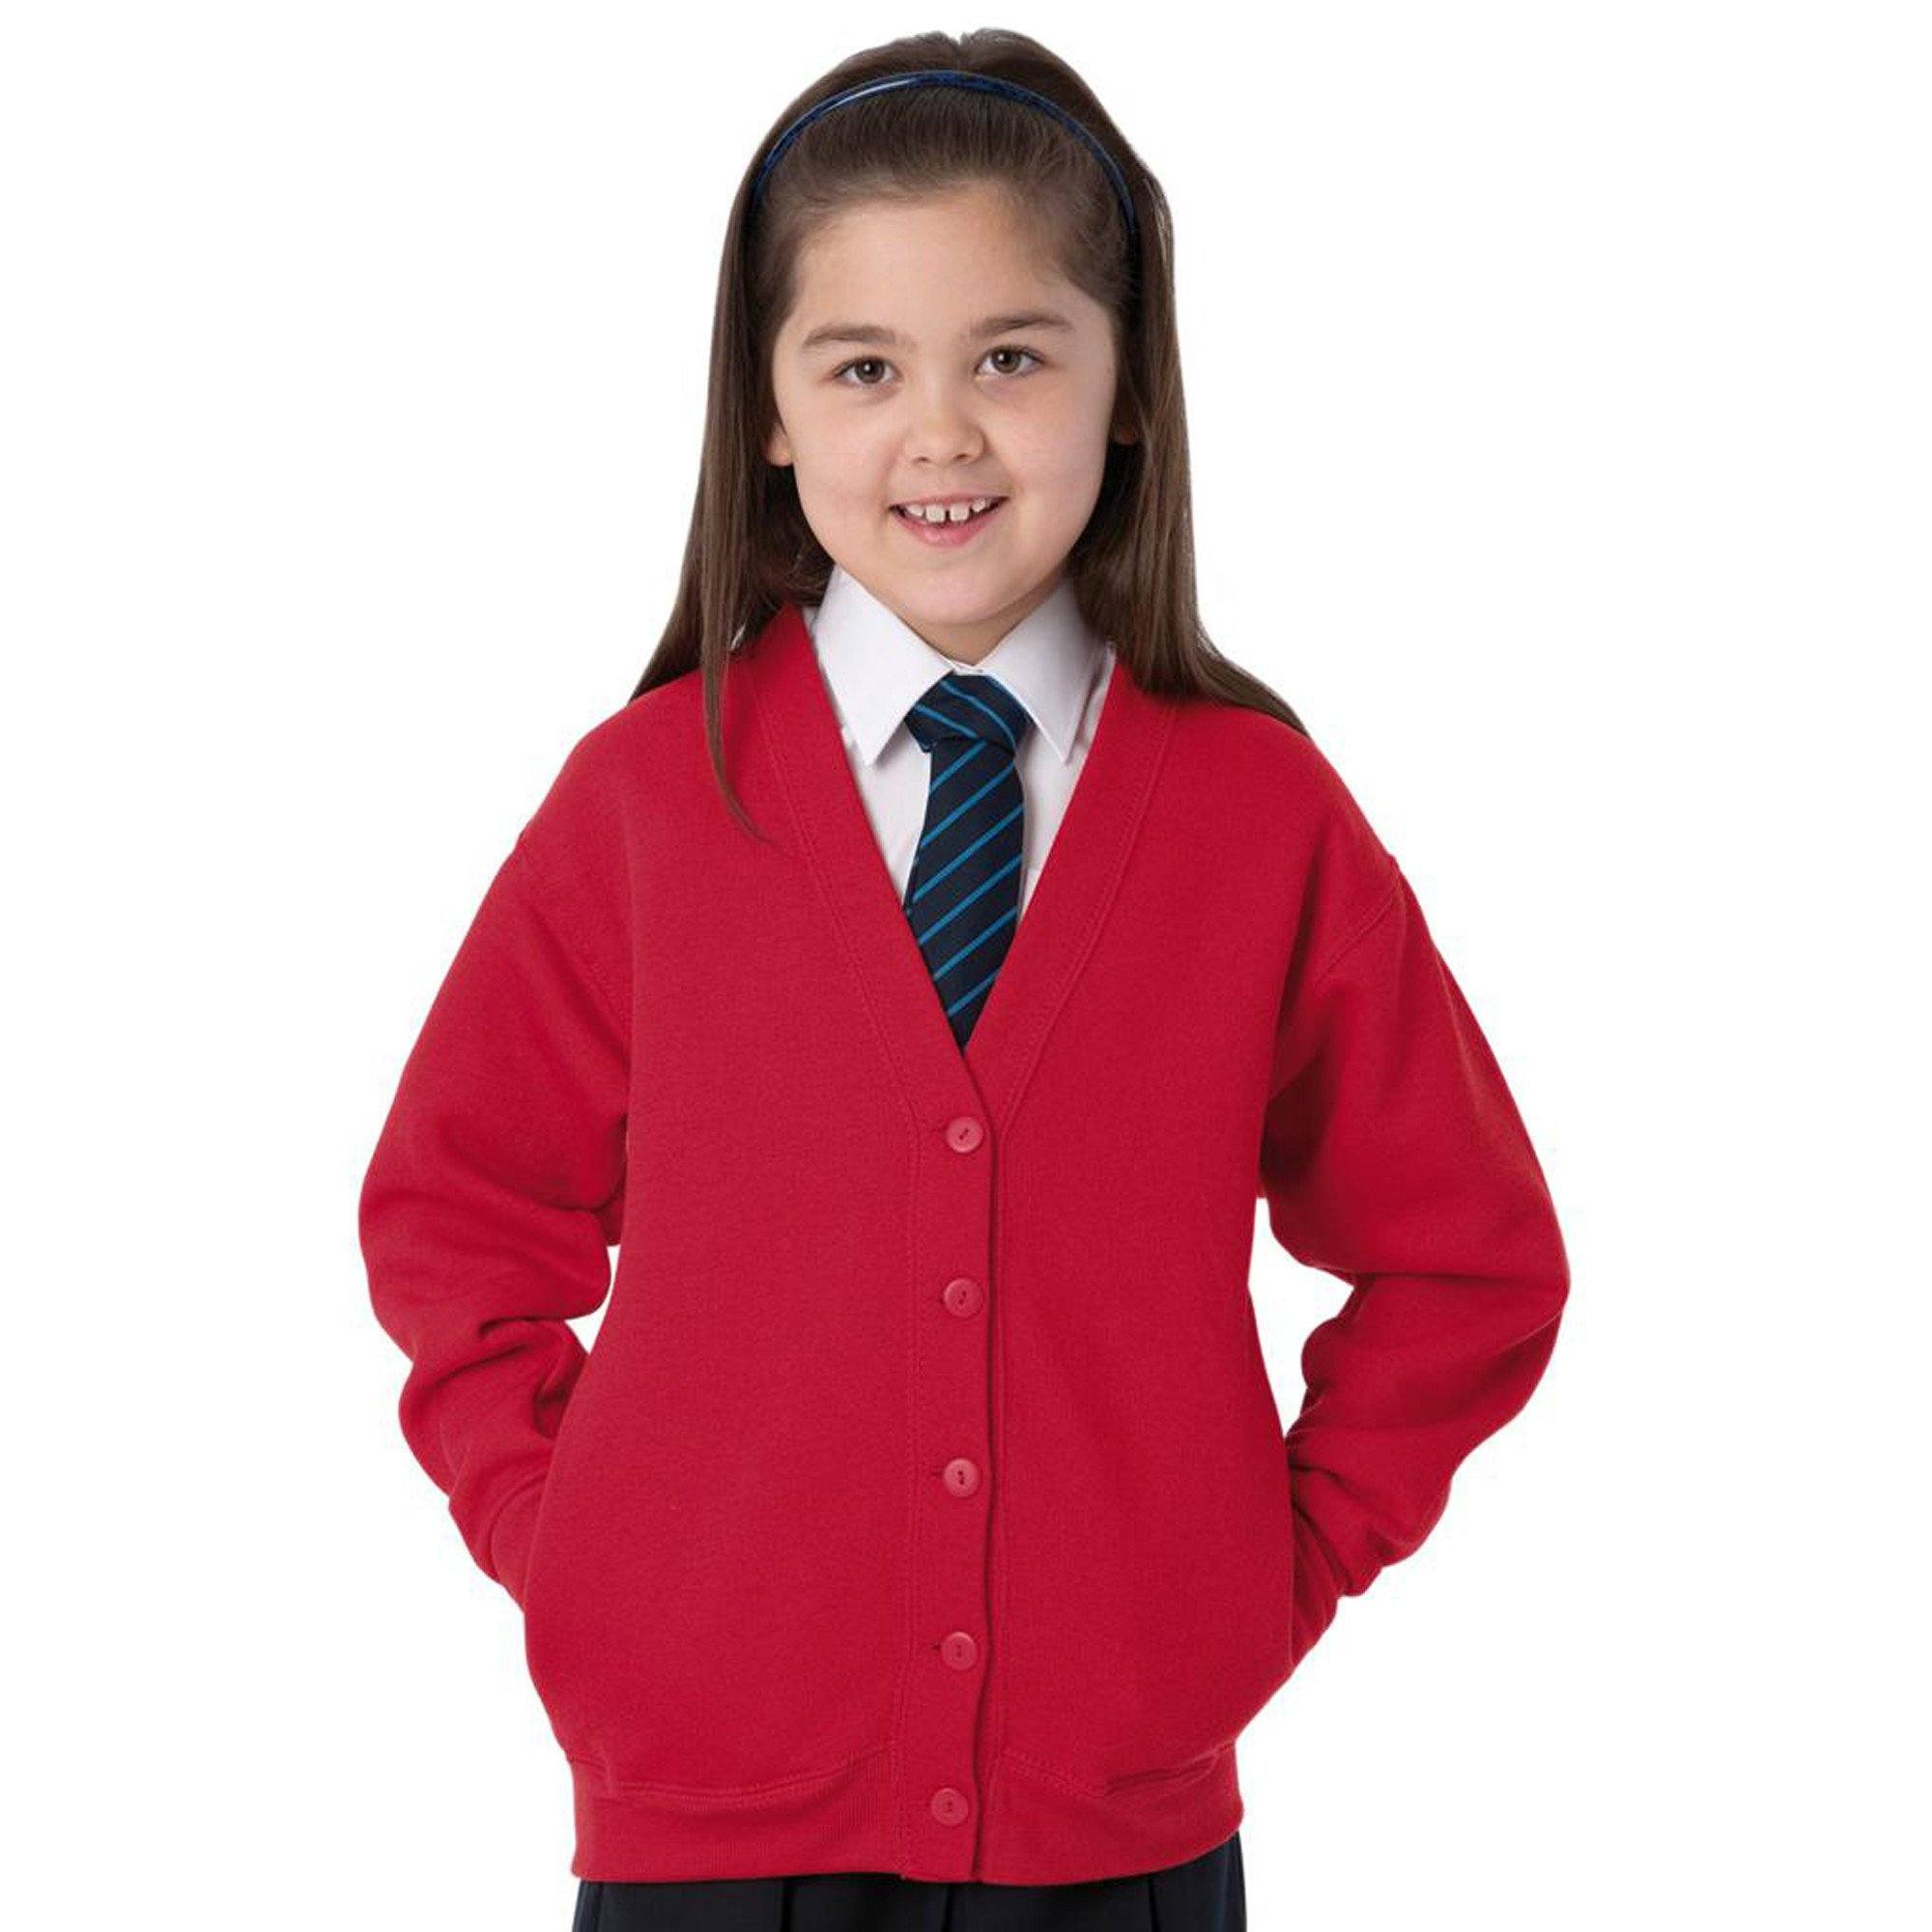 TS Comfy Cardigan Sweat Minor Fault Image Red 3-4 Years